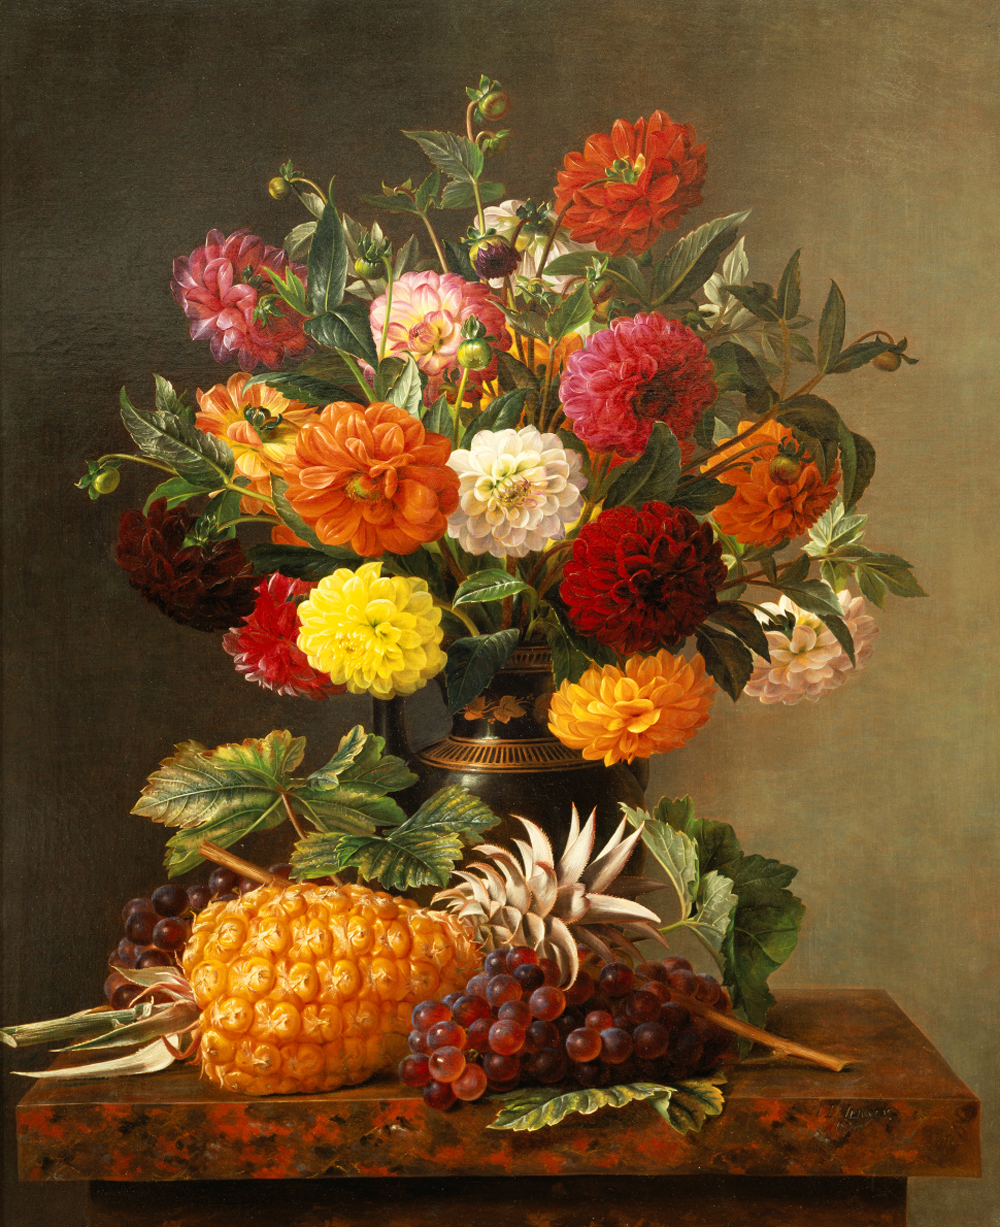 Still_Life_of_Dahlias_with_Pineapple_and_Grapes_by_Johan_Laurentz_Jensen.jpg